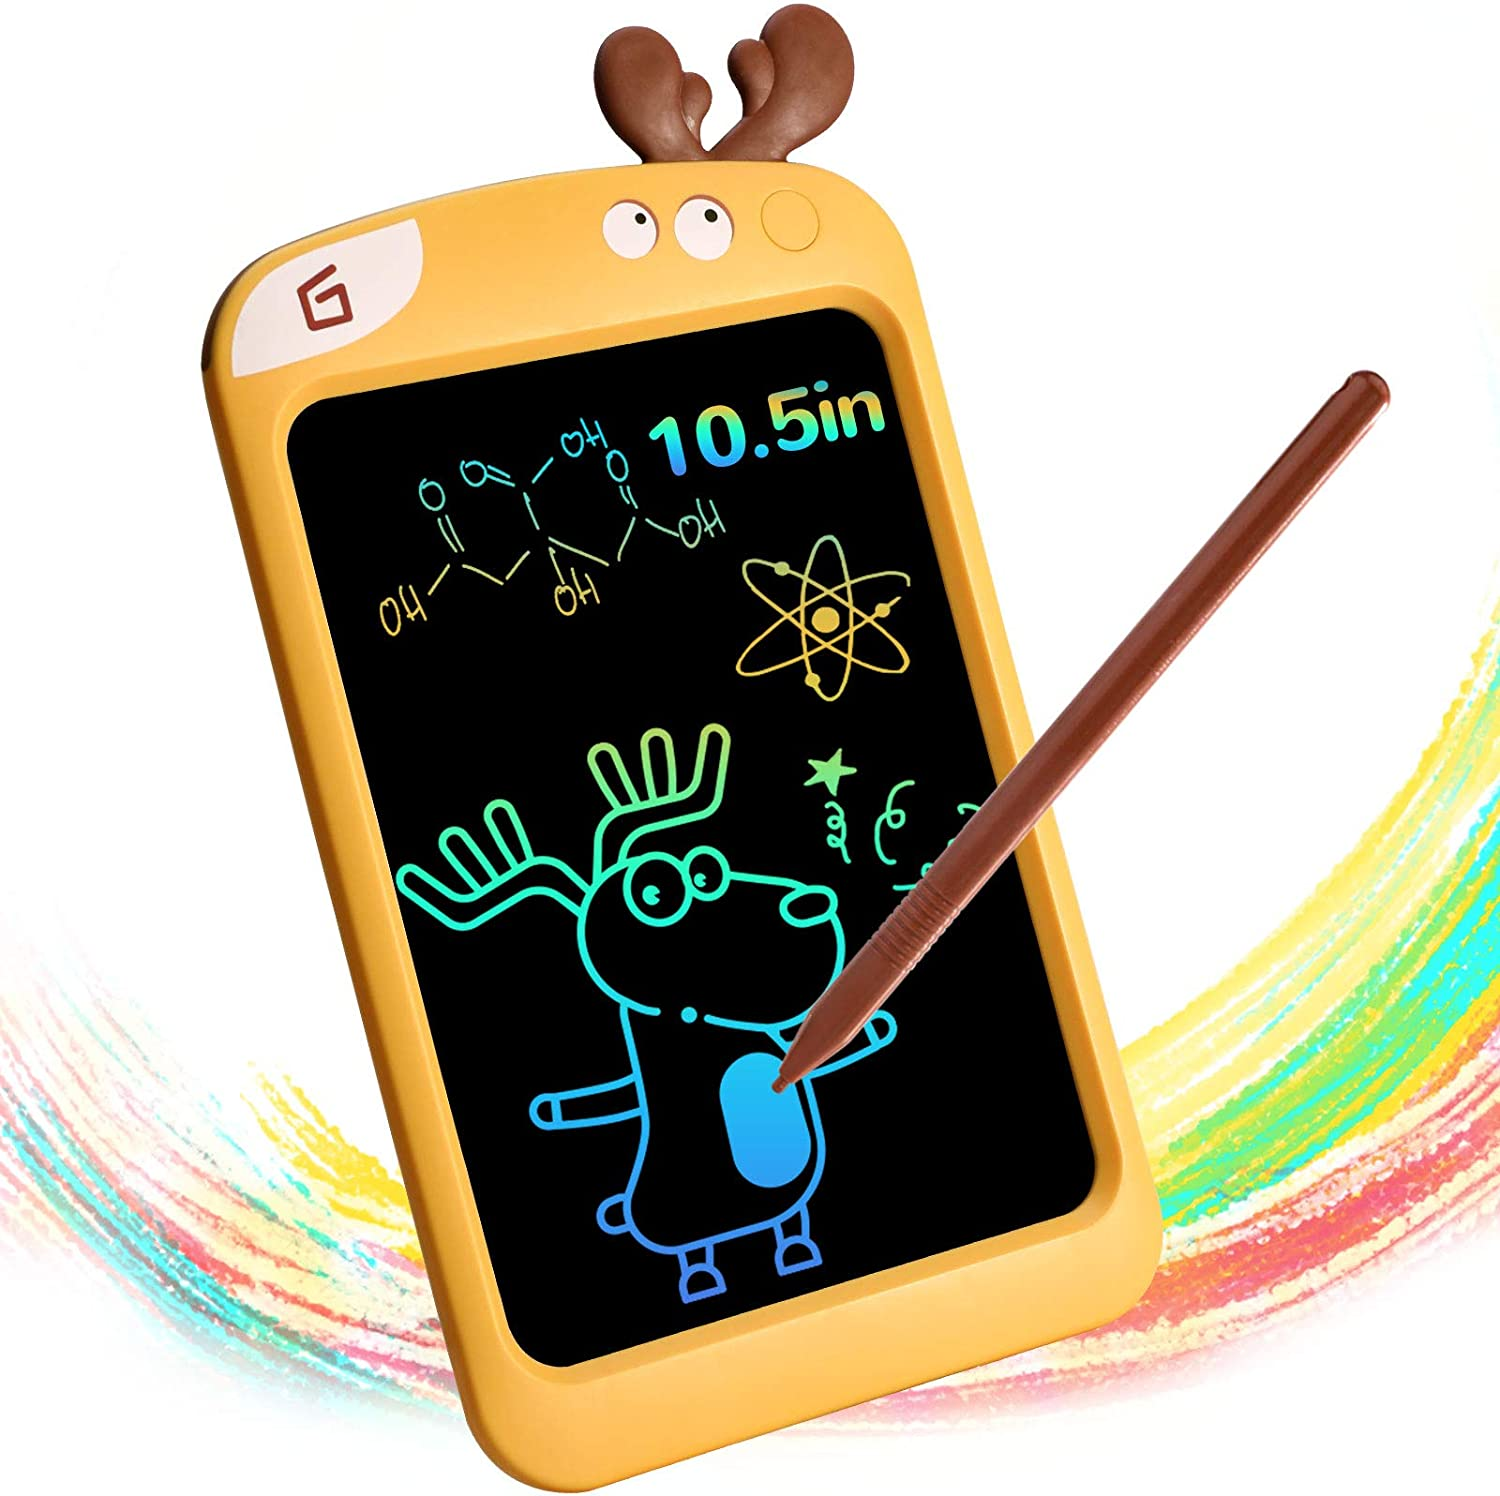 LCD Writing Tablet,Colorful Drawing Doodle Board,10.5 Inch Portable Electronic Graphics Learning Toys for Age 3-8 Boys or Girls